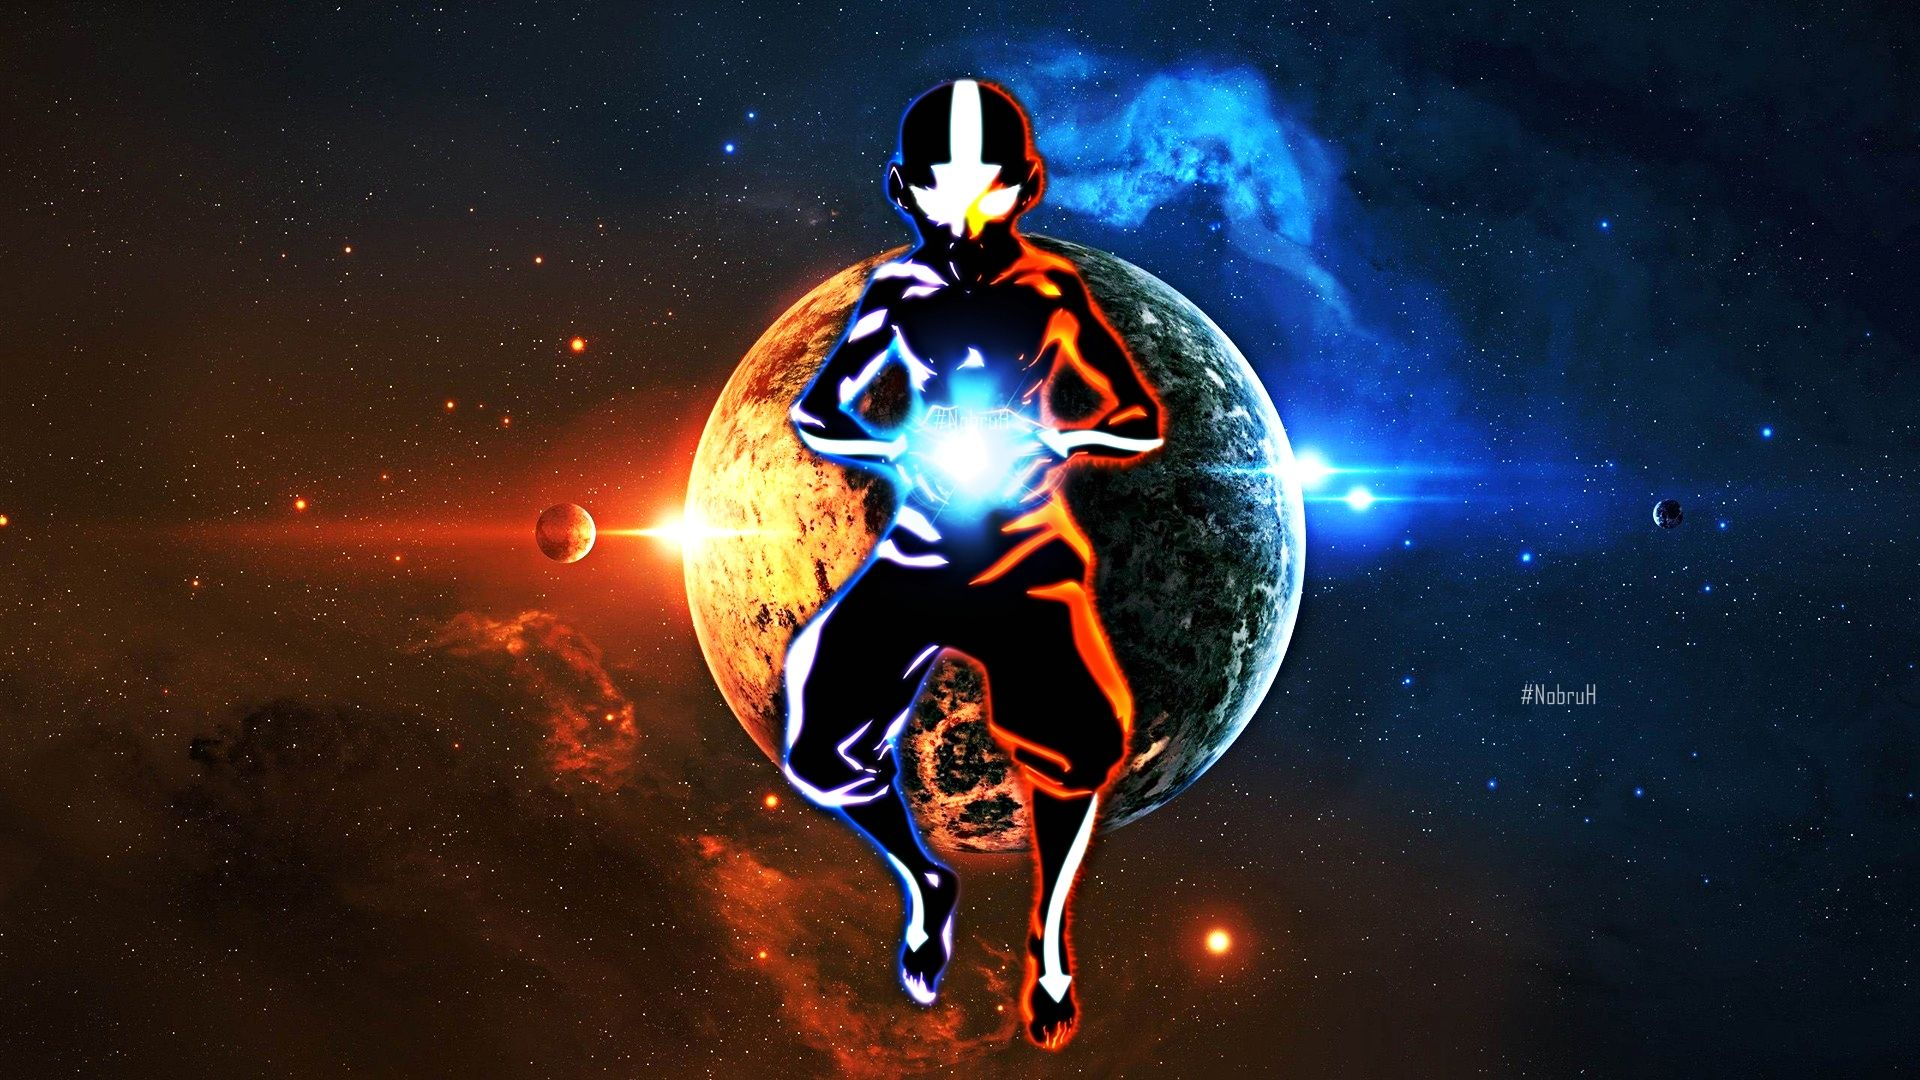 images for > avatar the last airbender wallpaper aang | avatar